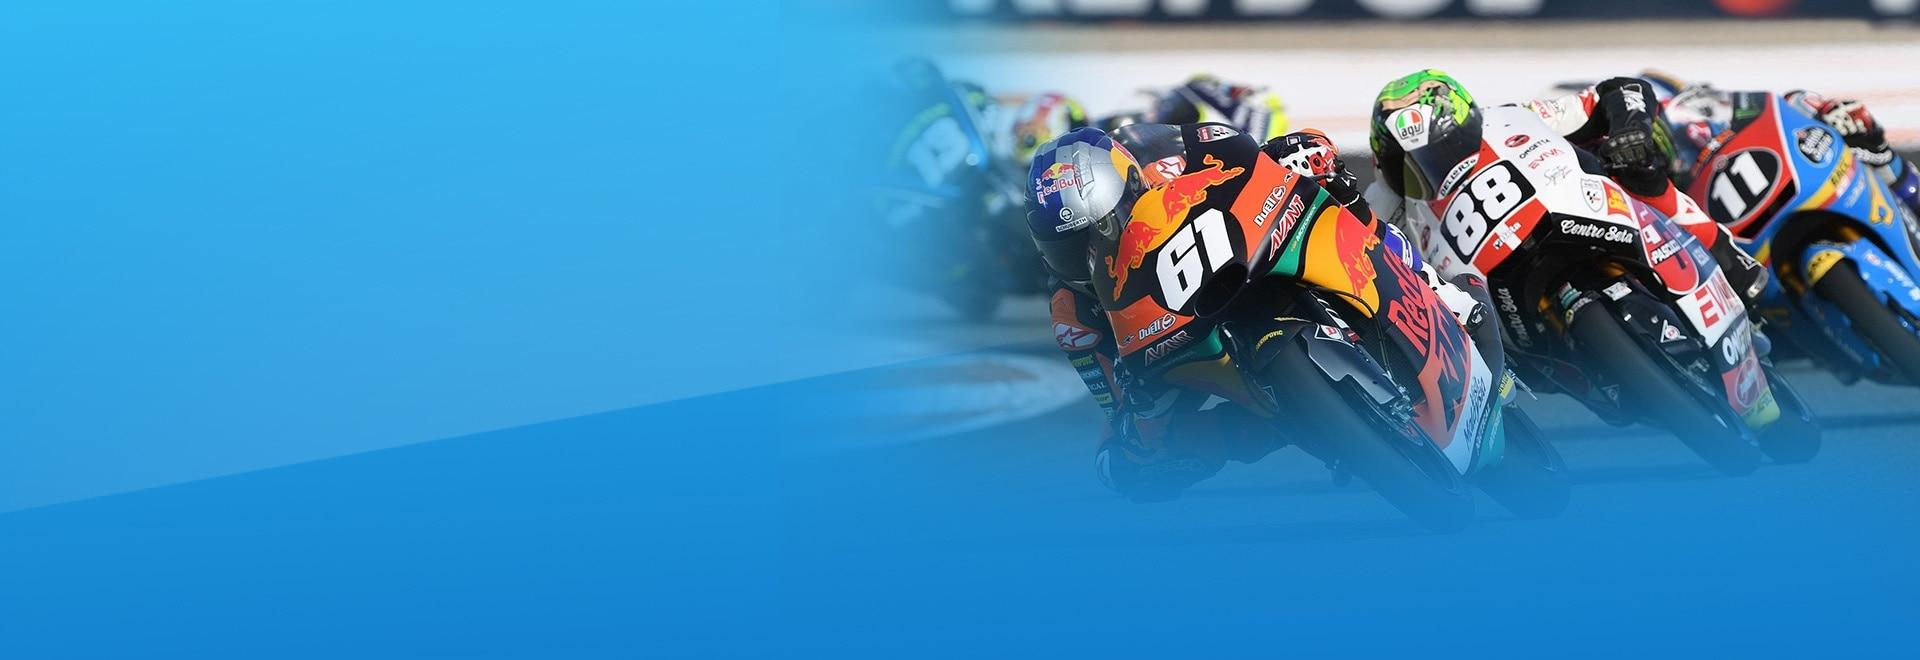 GP Estoril: Moto2. Gara 2